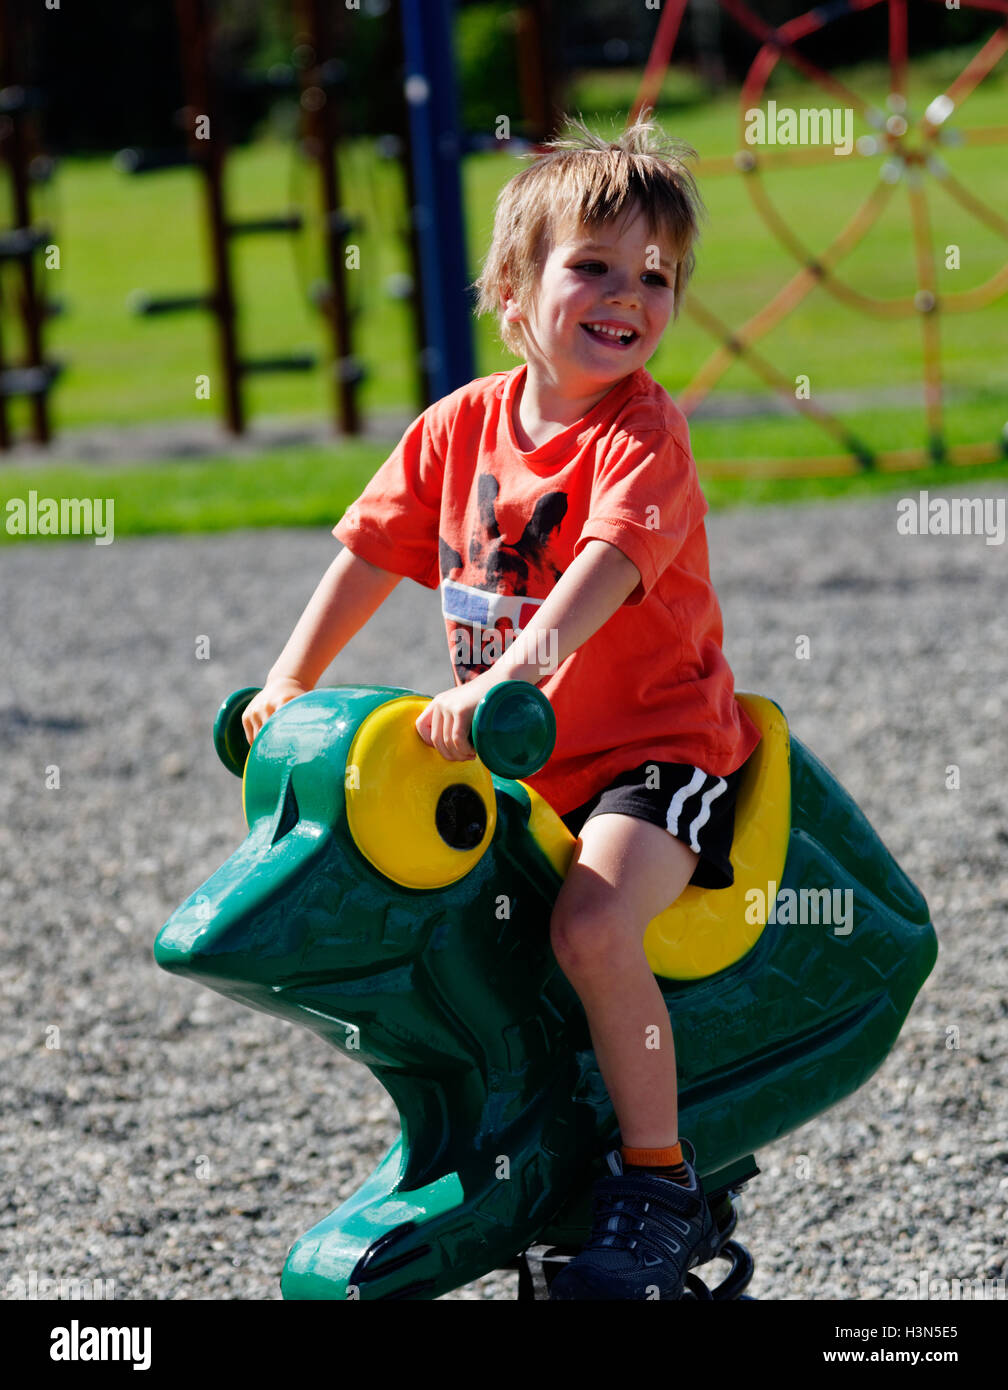 A laughing child (4 yrs old) bouncing on a playground toy - Stock Image